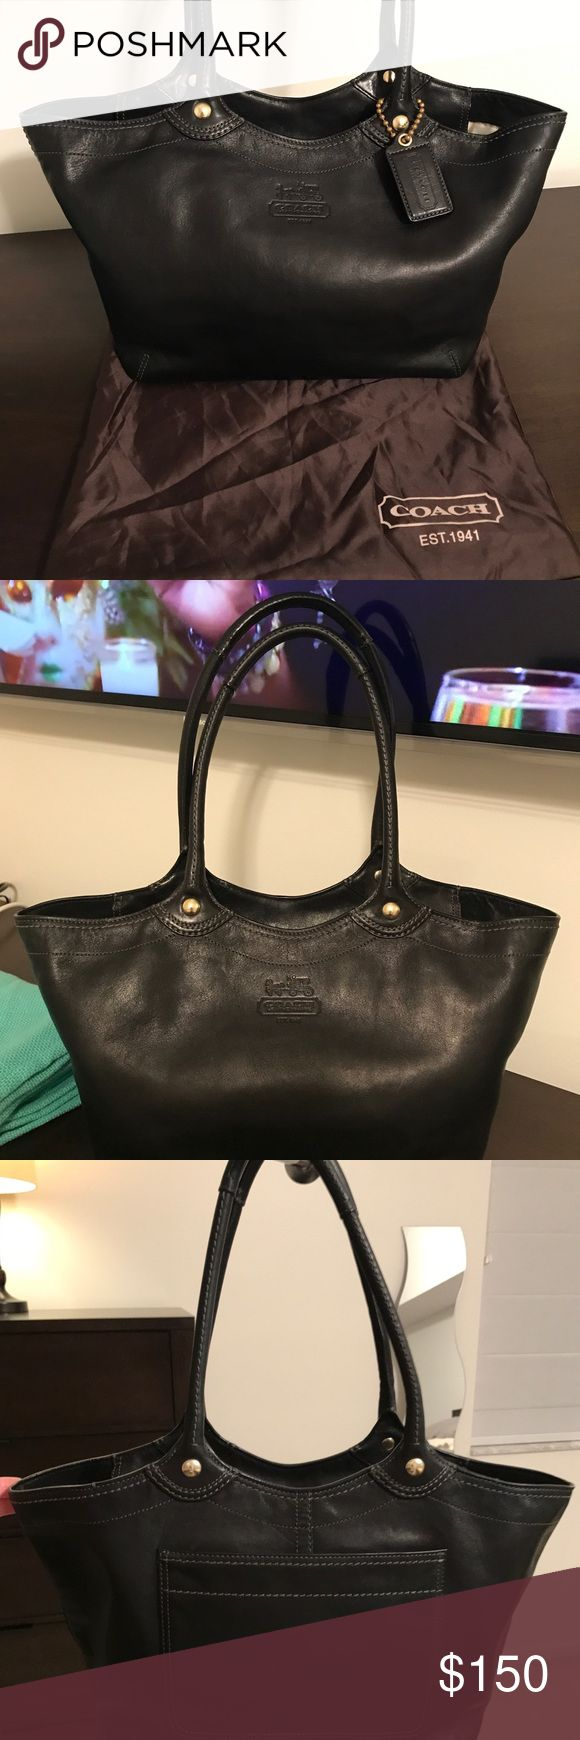 "Authentic Coach Legacy Leather Tote. Authentic Coach Legacy Leather Tote with Zip closure.....EUC. Measures: Length 11"" at the bottom up to 17.50 "" at the top.  Width 5.25"" Height 9"" Handle Top 9.5""  Will consider all offers.  Thank you for looking! Coach Bags"